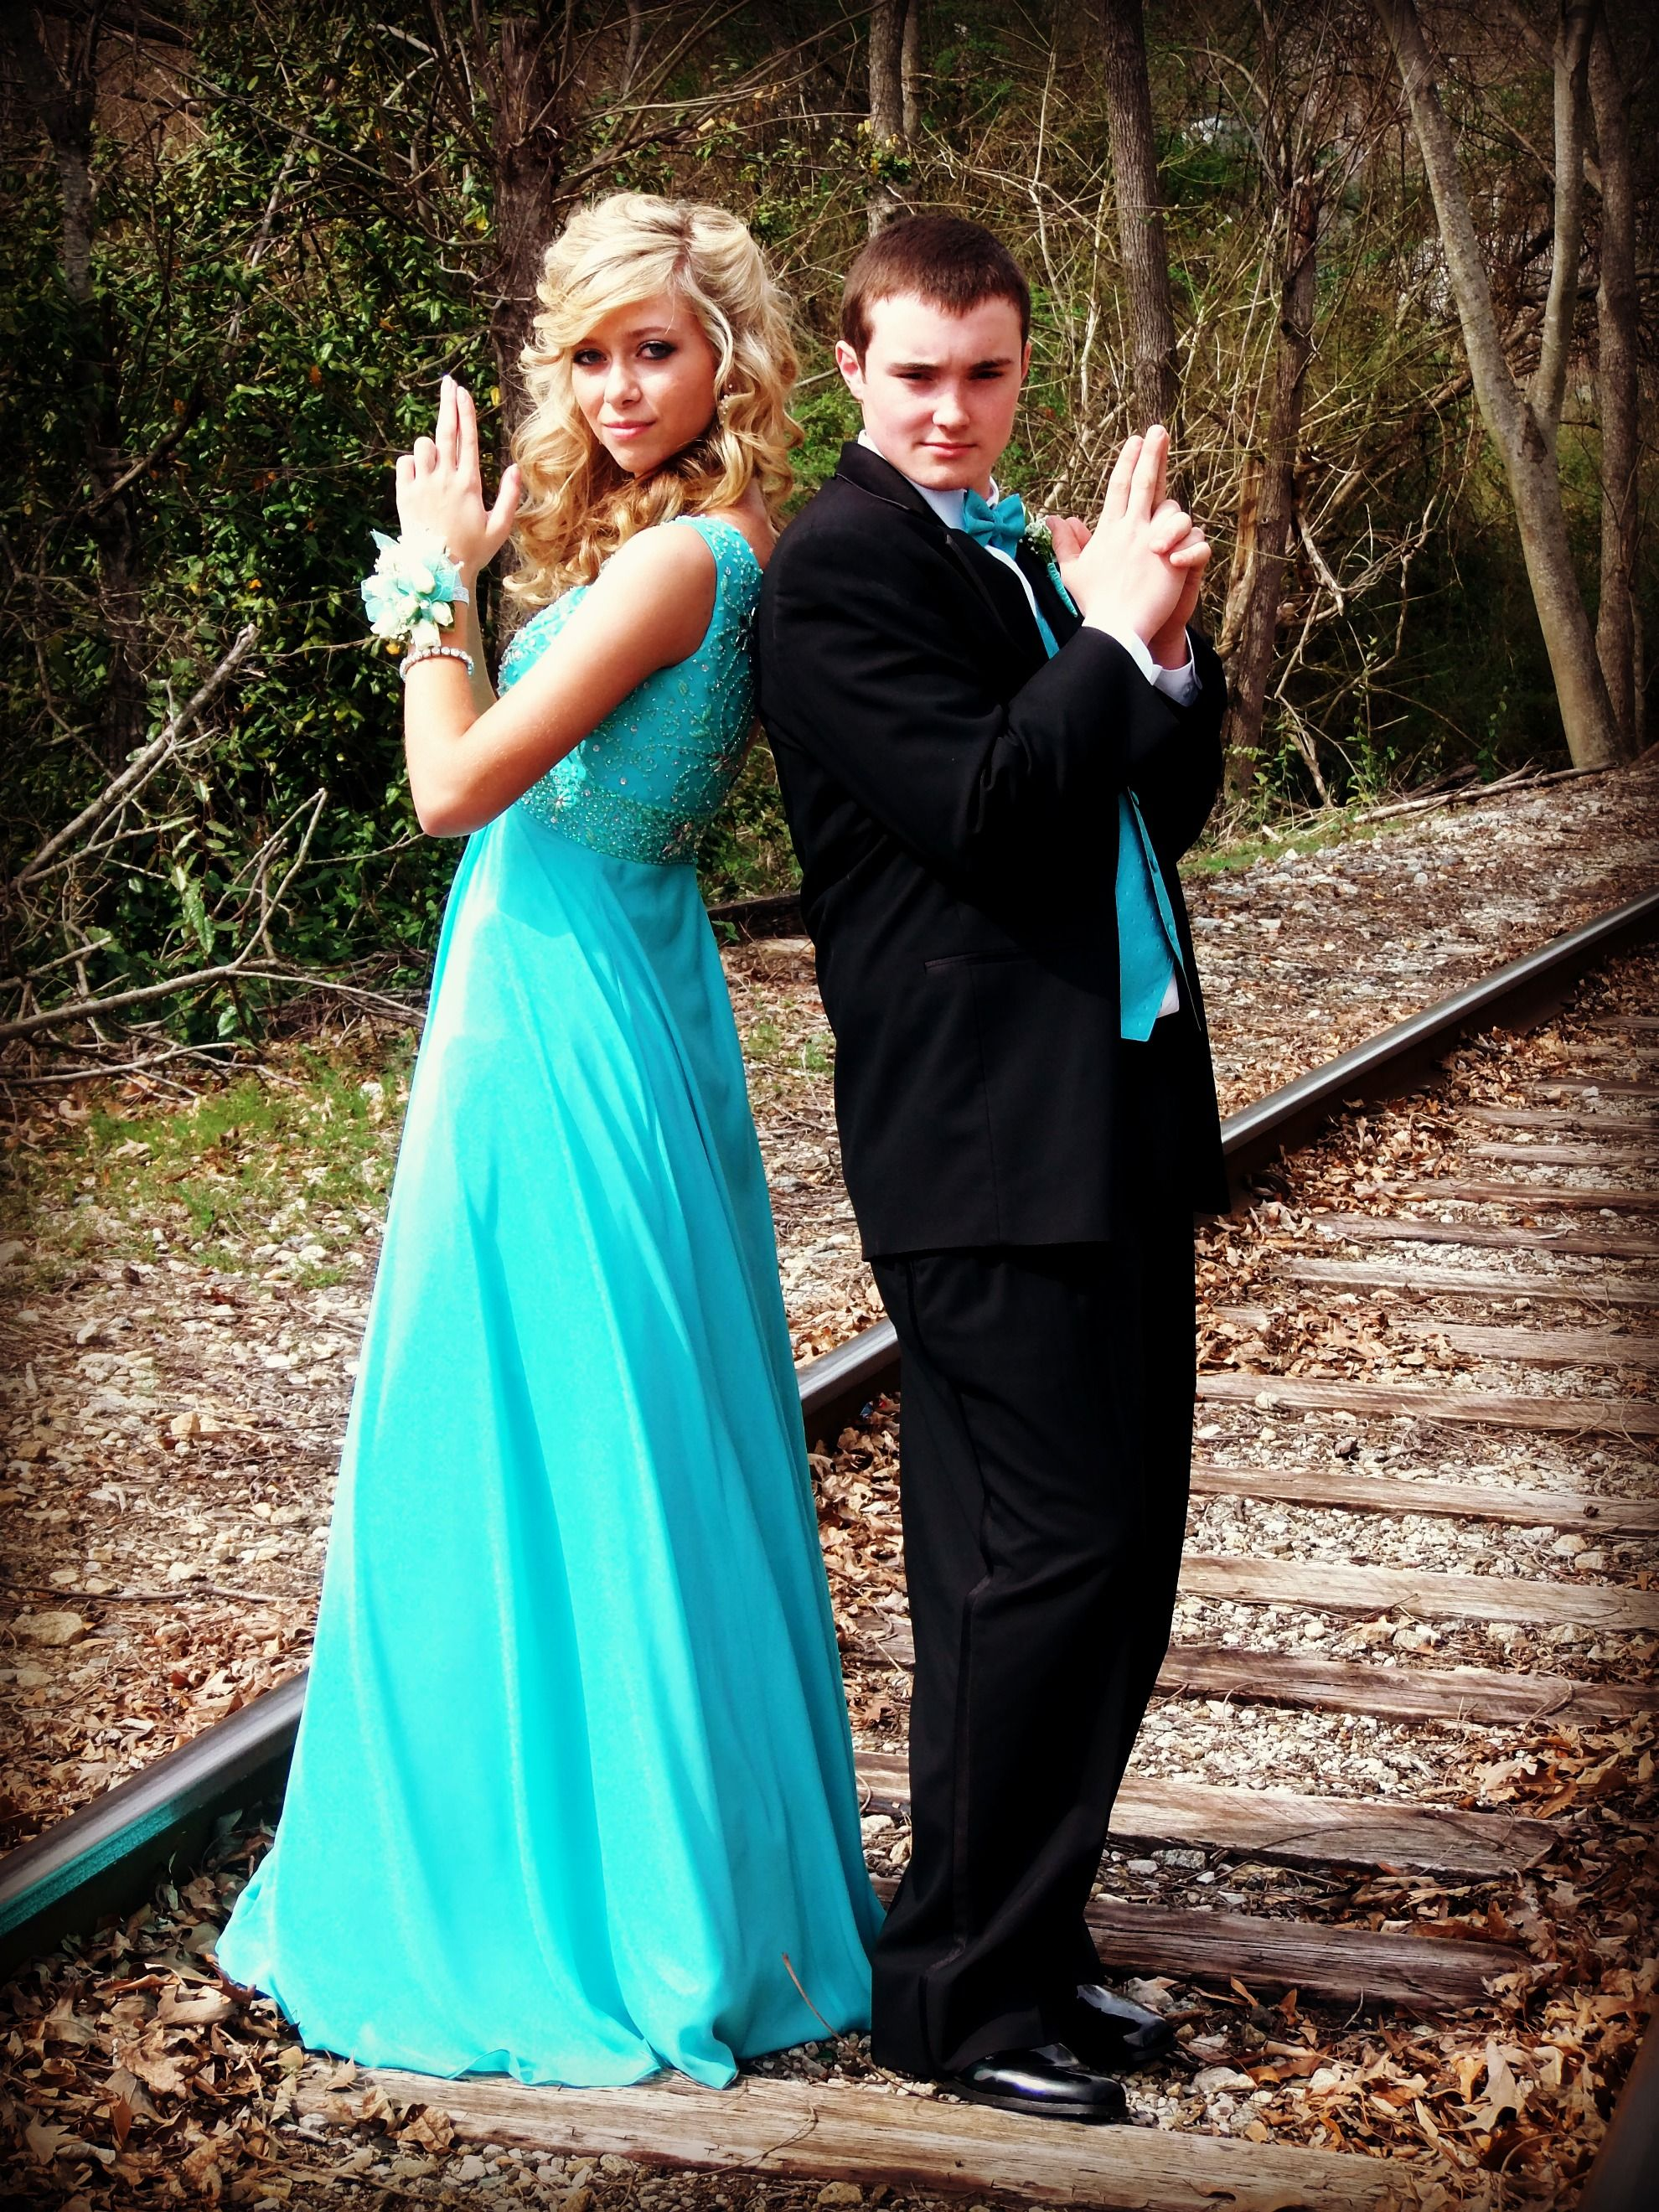 Cute Prom Poses